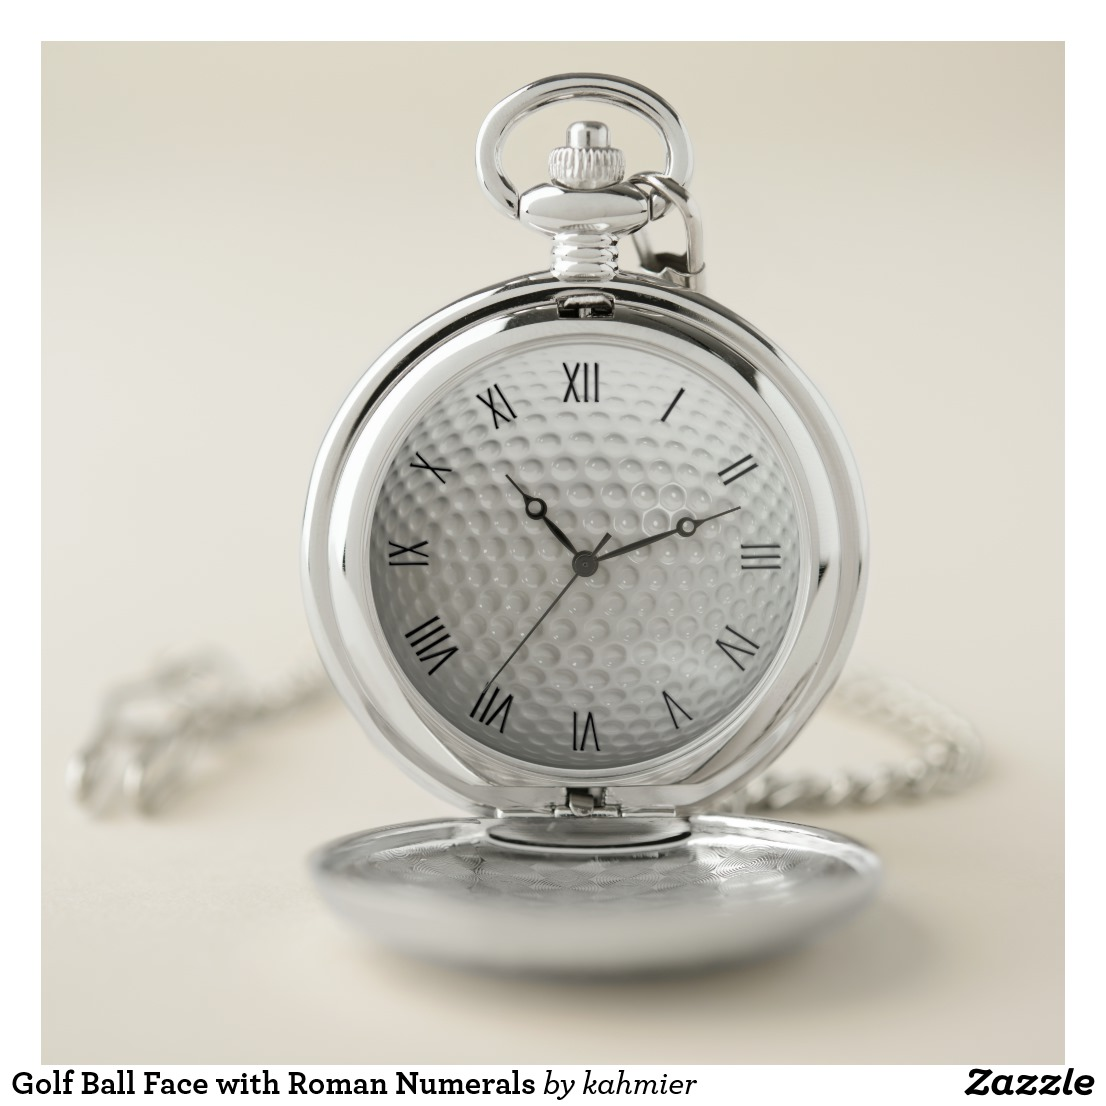 Golf Ball Face with Roman Numerals Pocket Watch